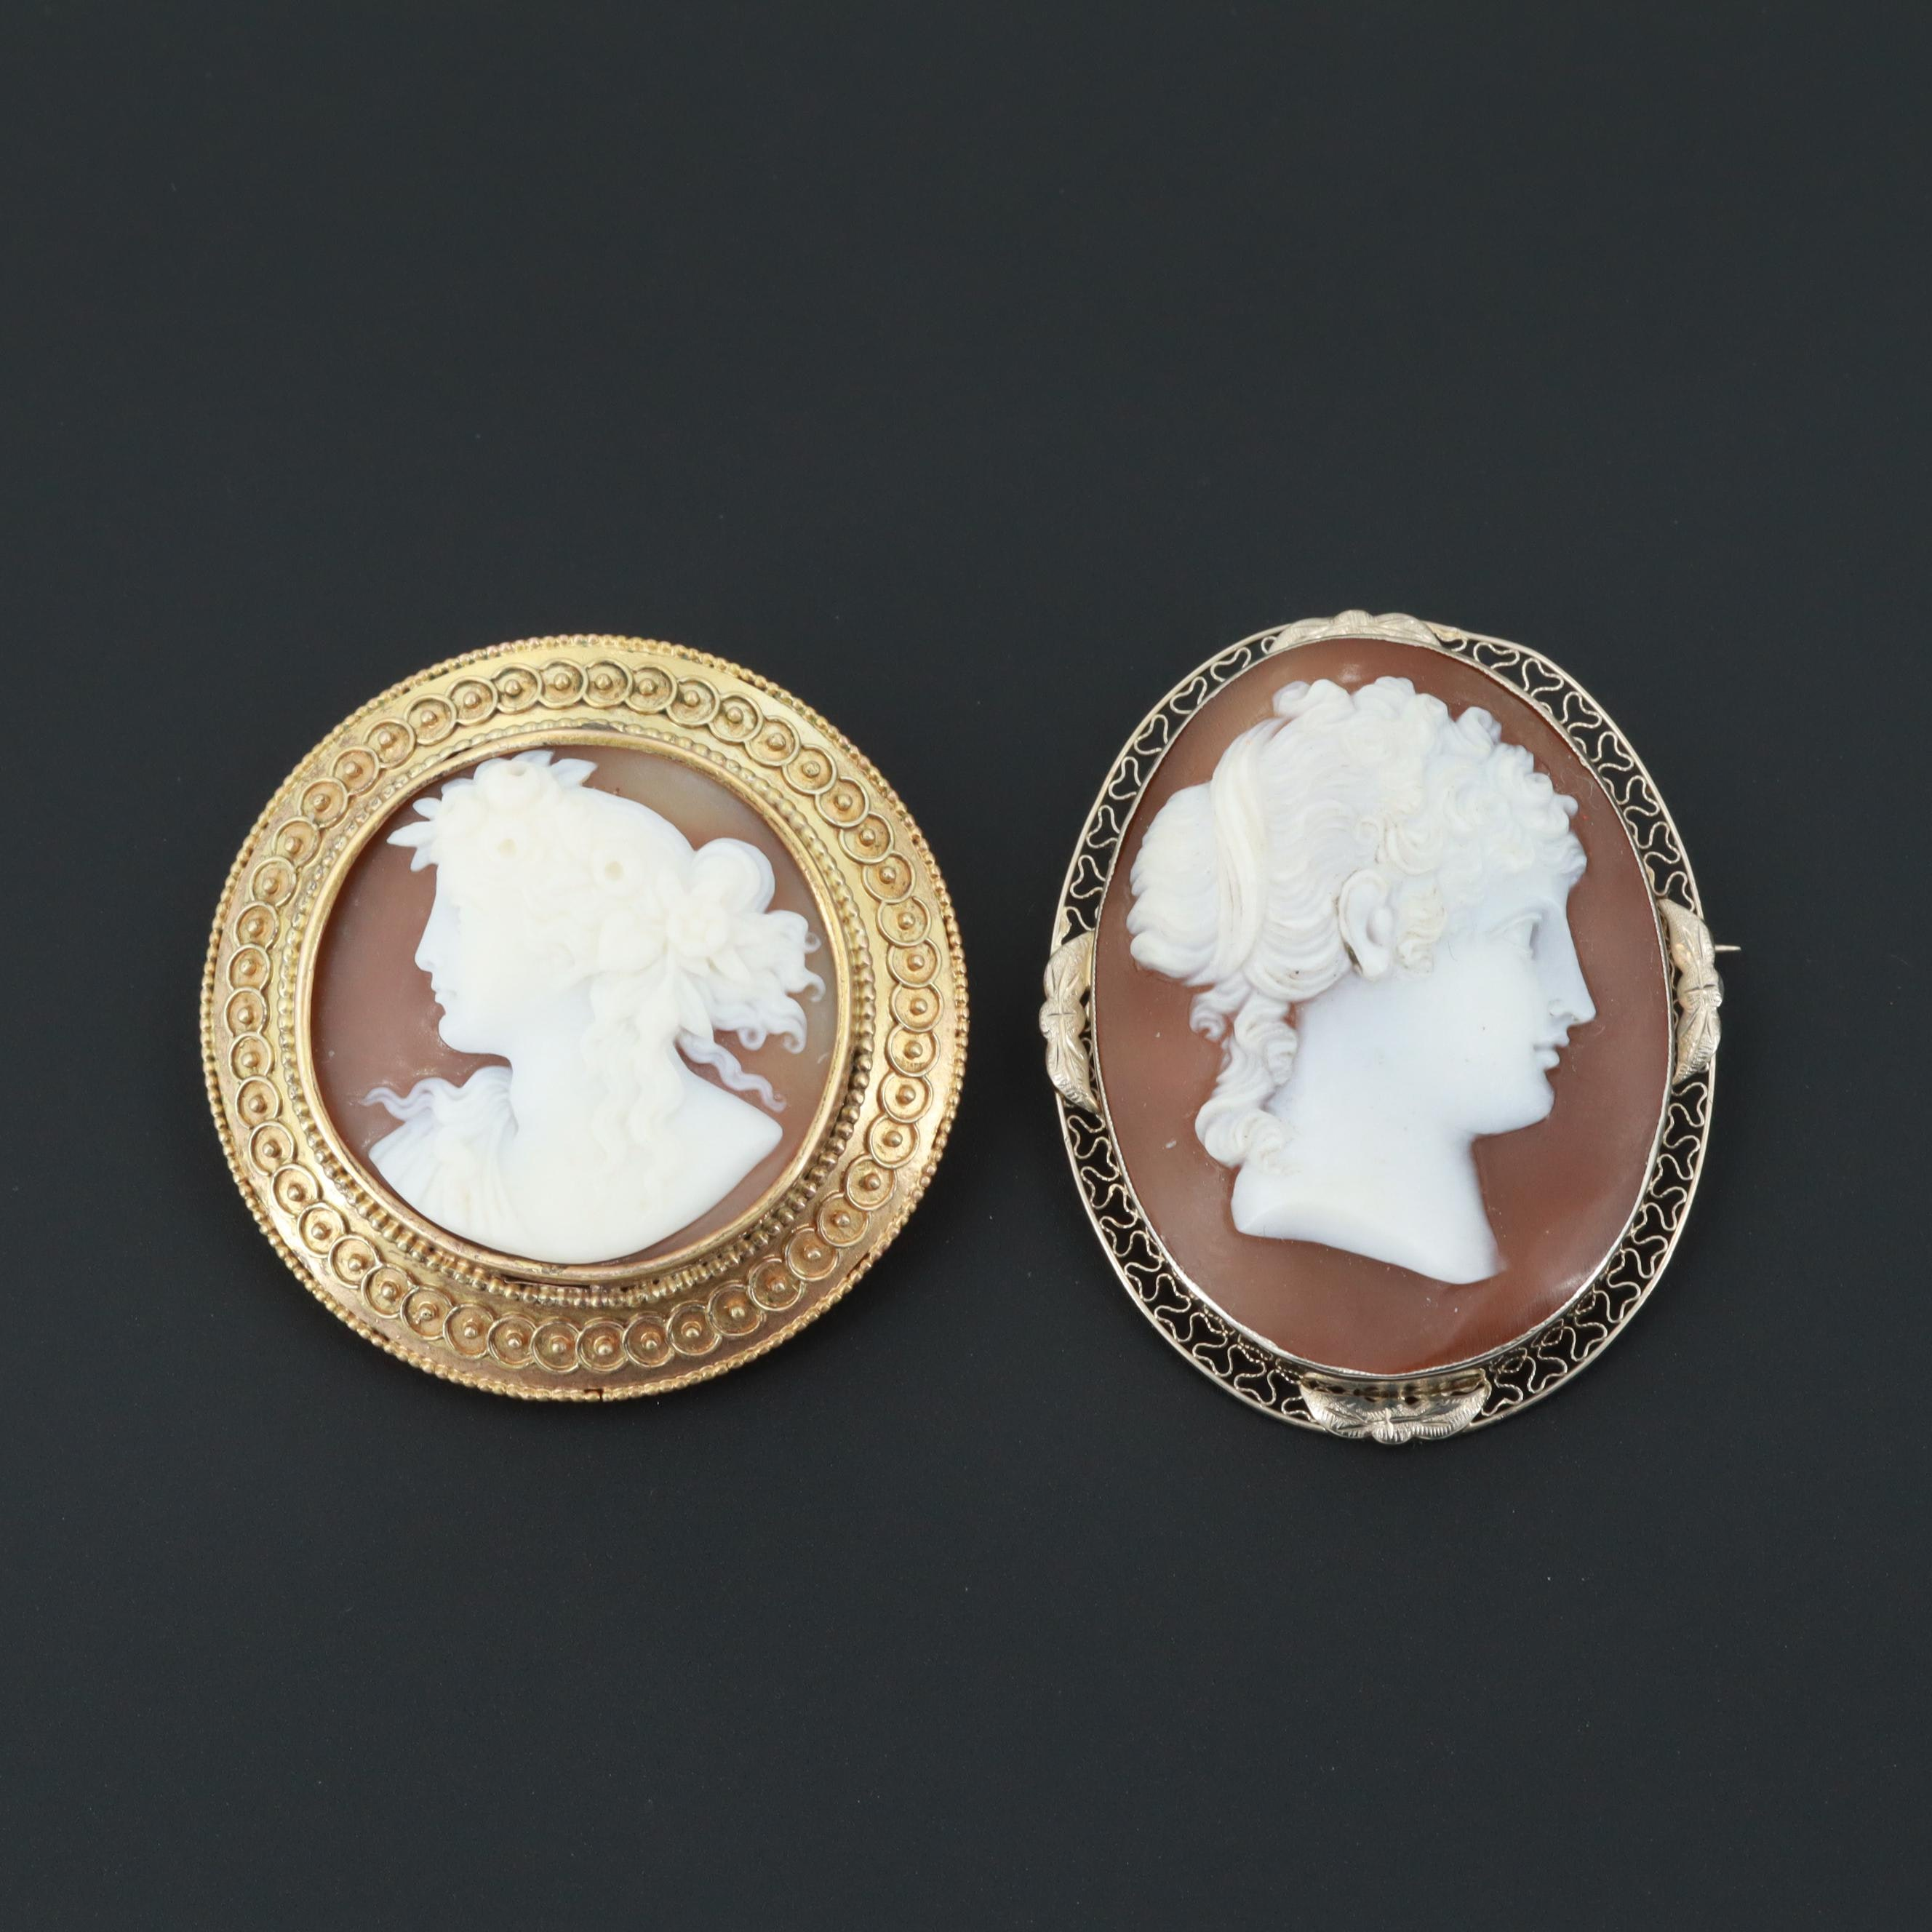 Vintage and Tuscan Revival 14K Yellow Gold Helmet Shell Cameo Brooches